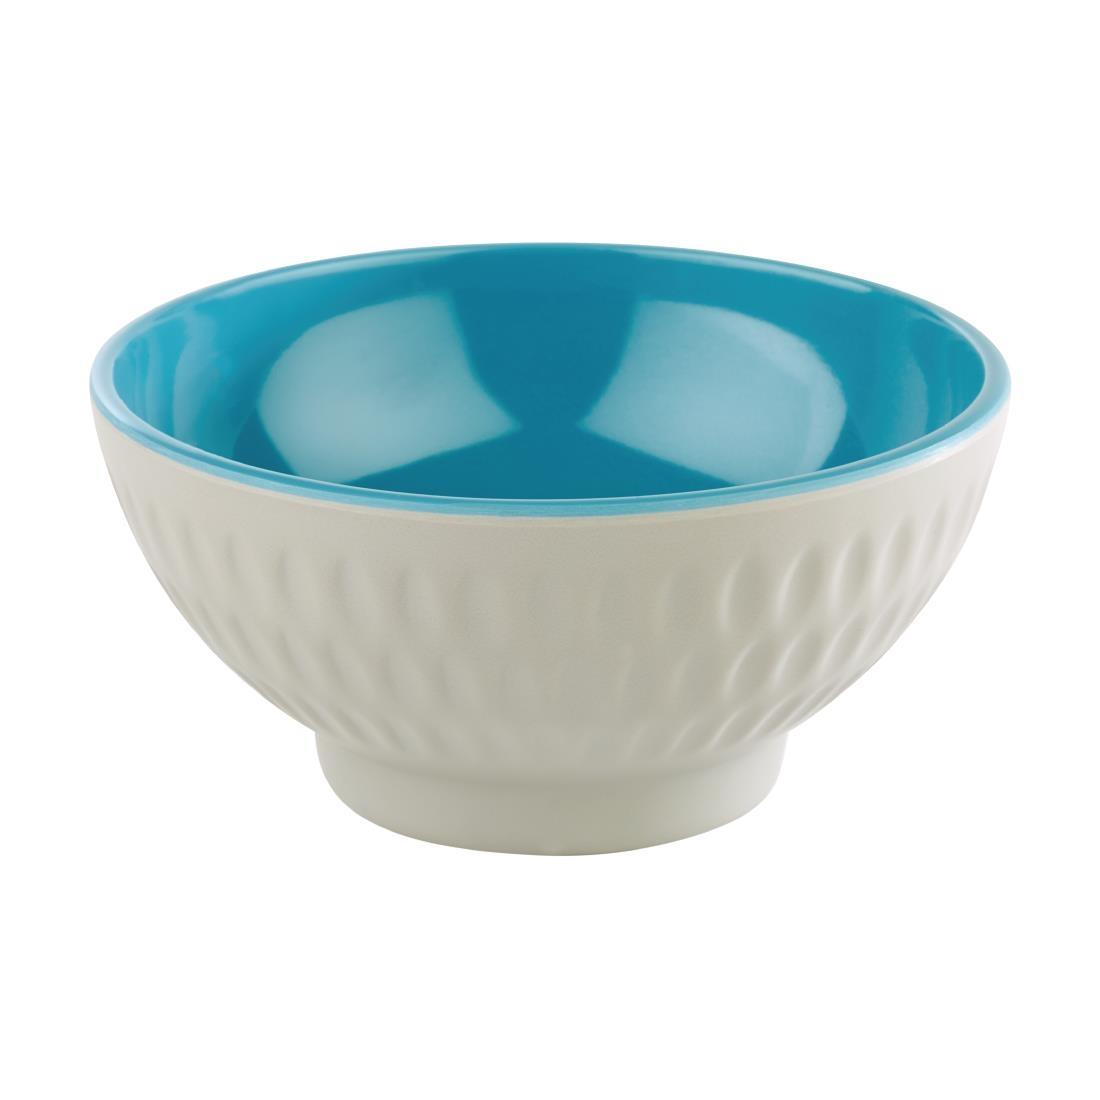 DW012 - APS Asia+ Bowl Blue 160mm - Each - DW012